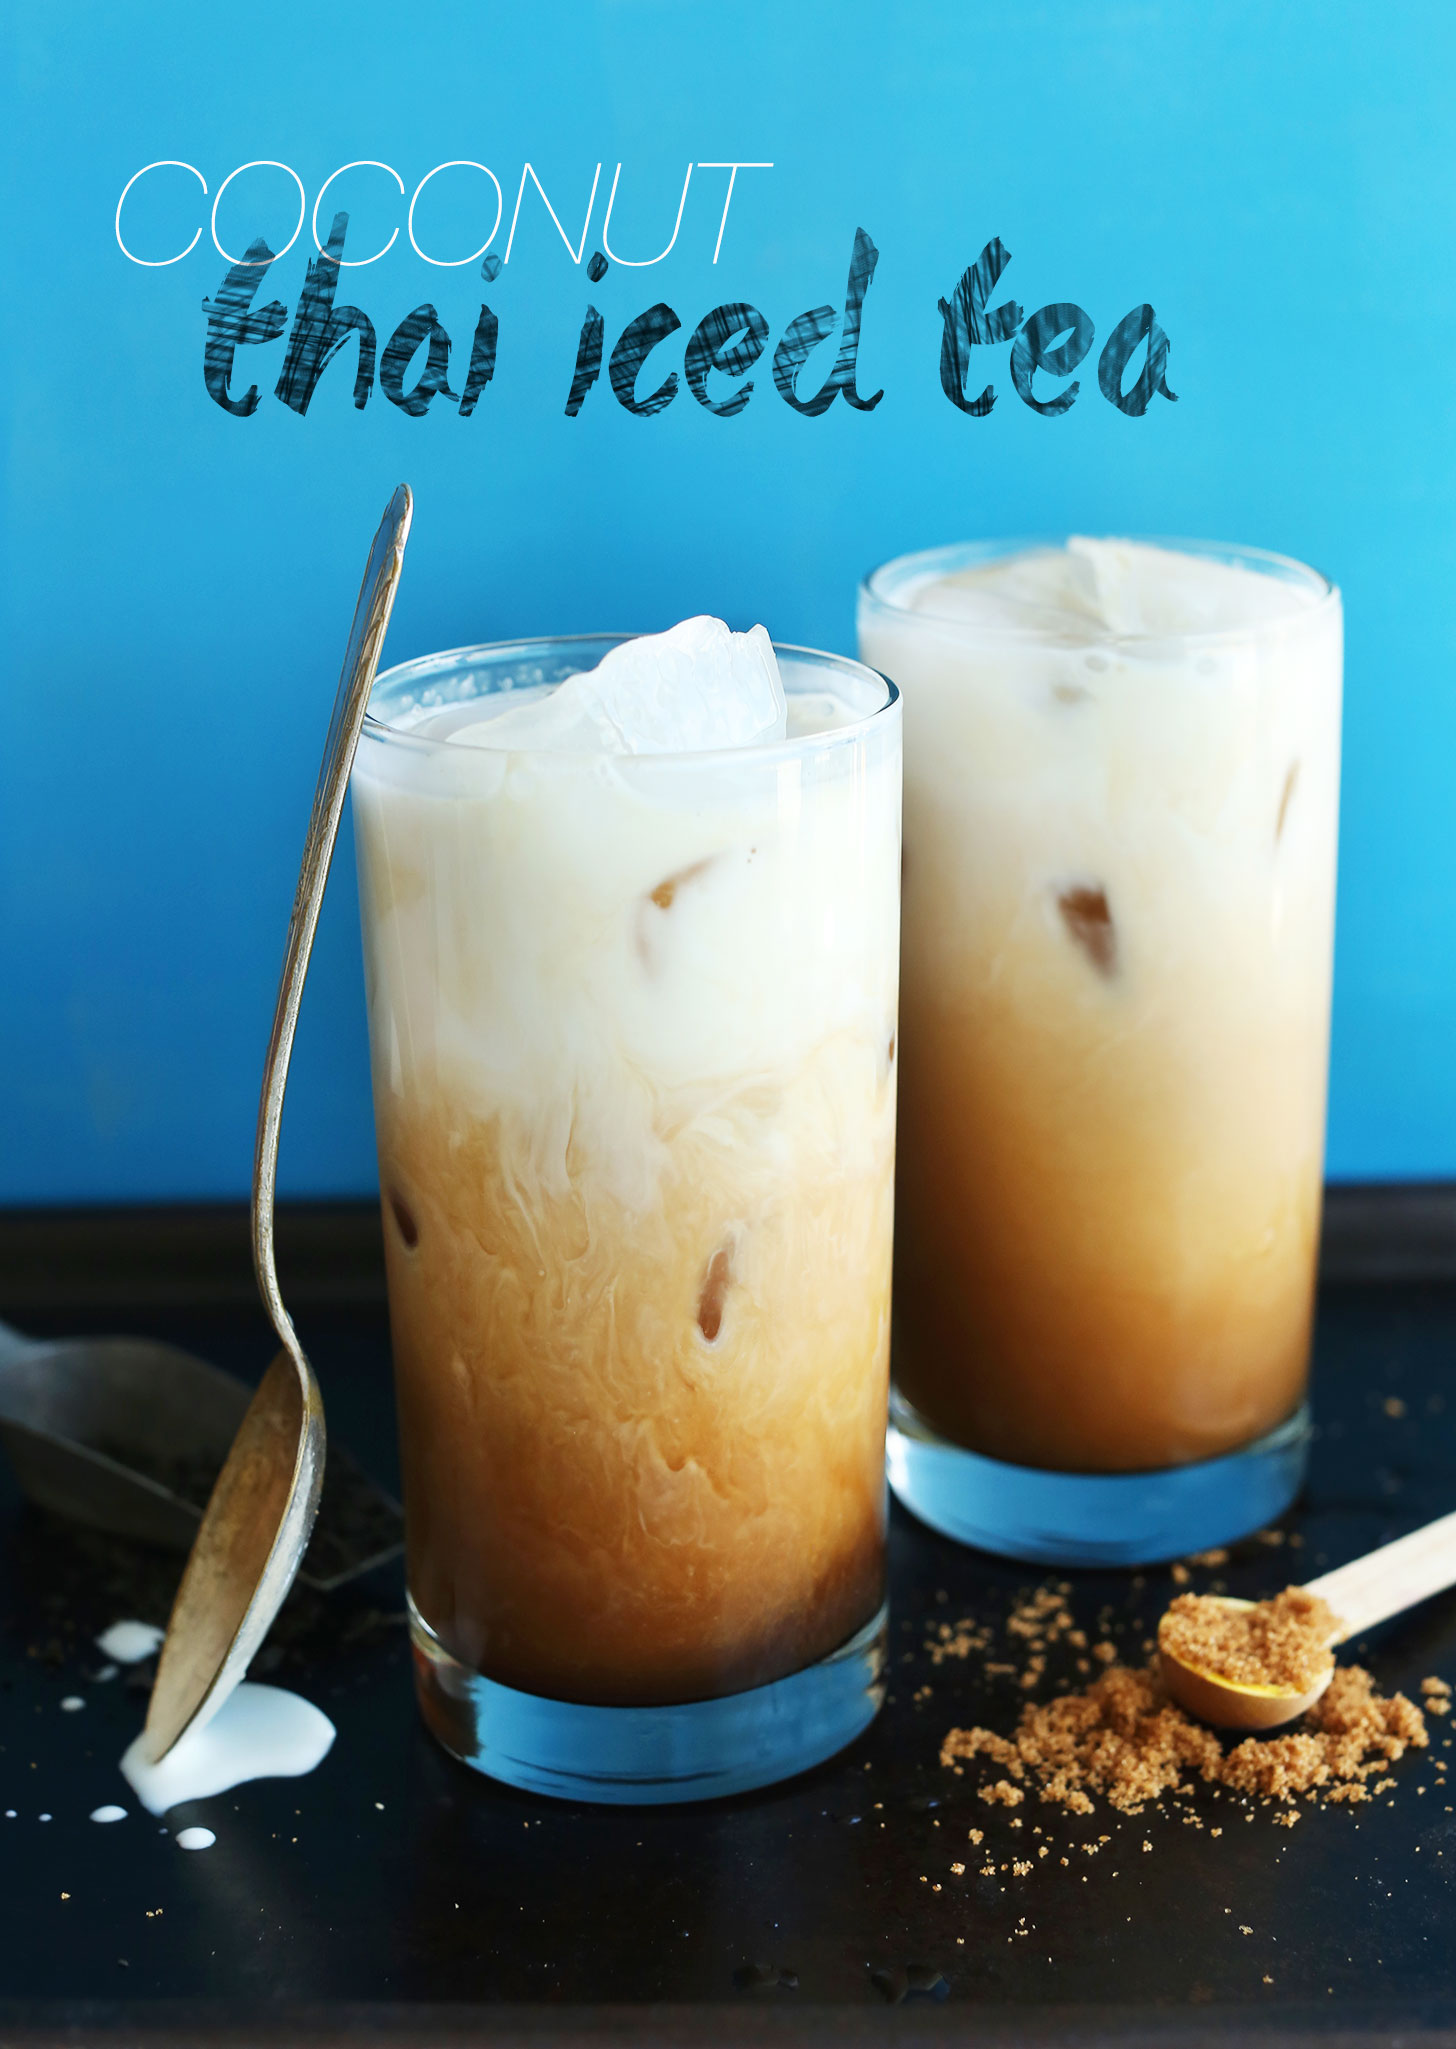 AMAZING, easy Vegan Thai Iced Tea made with black tea, vanilla, natural sweeteners, and creamy coconut milk! #vegan #glutenfree #thai #thaitea #beverage #recipe #healthy #coconut #minimalistbaker